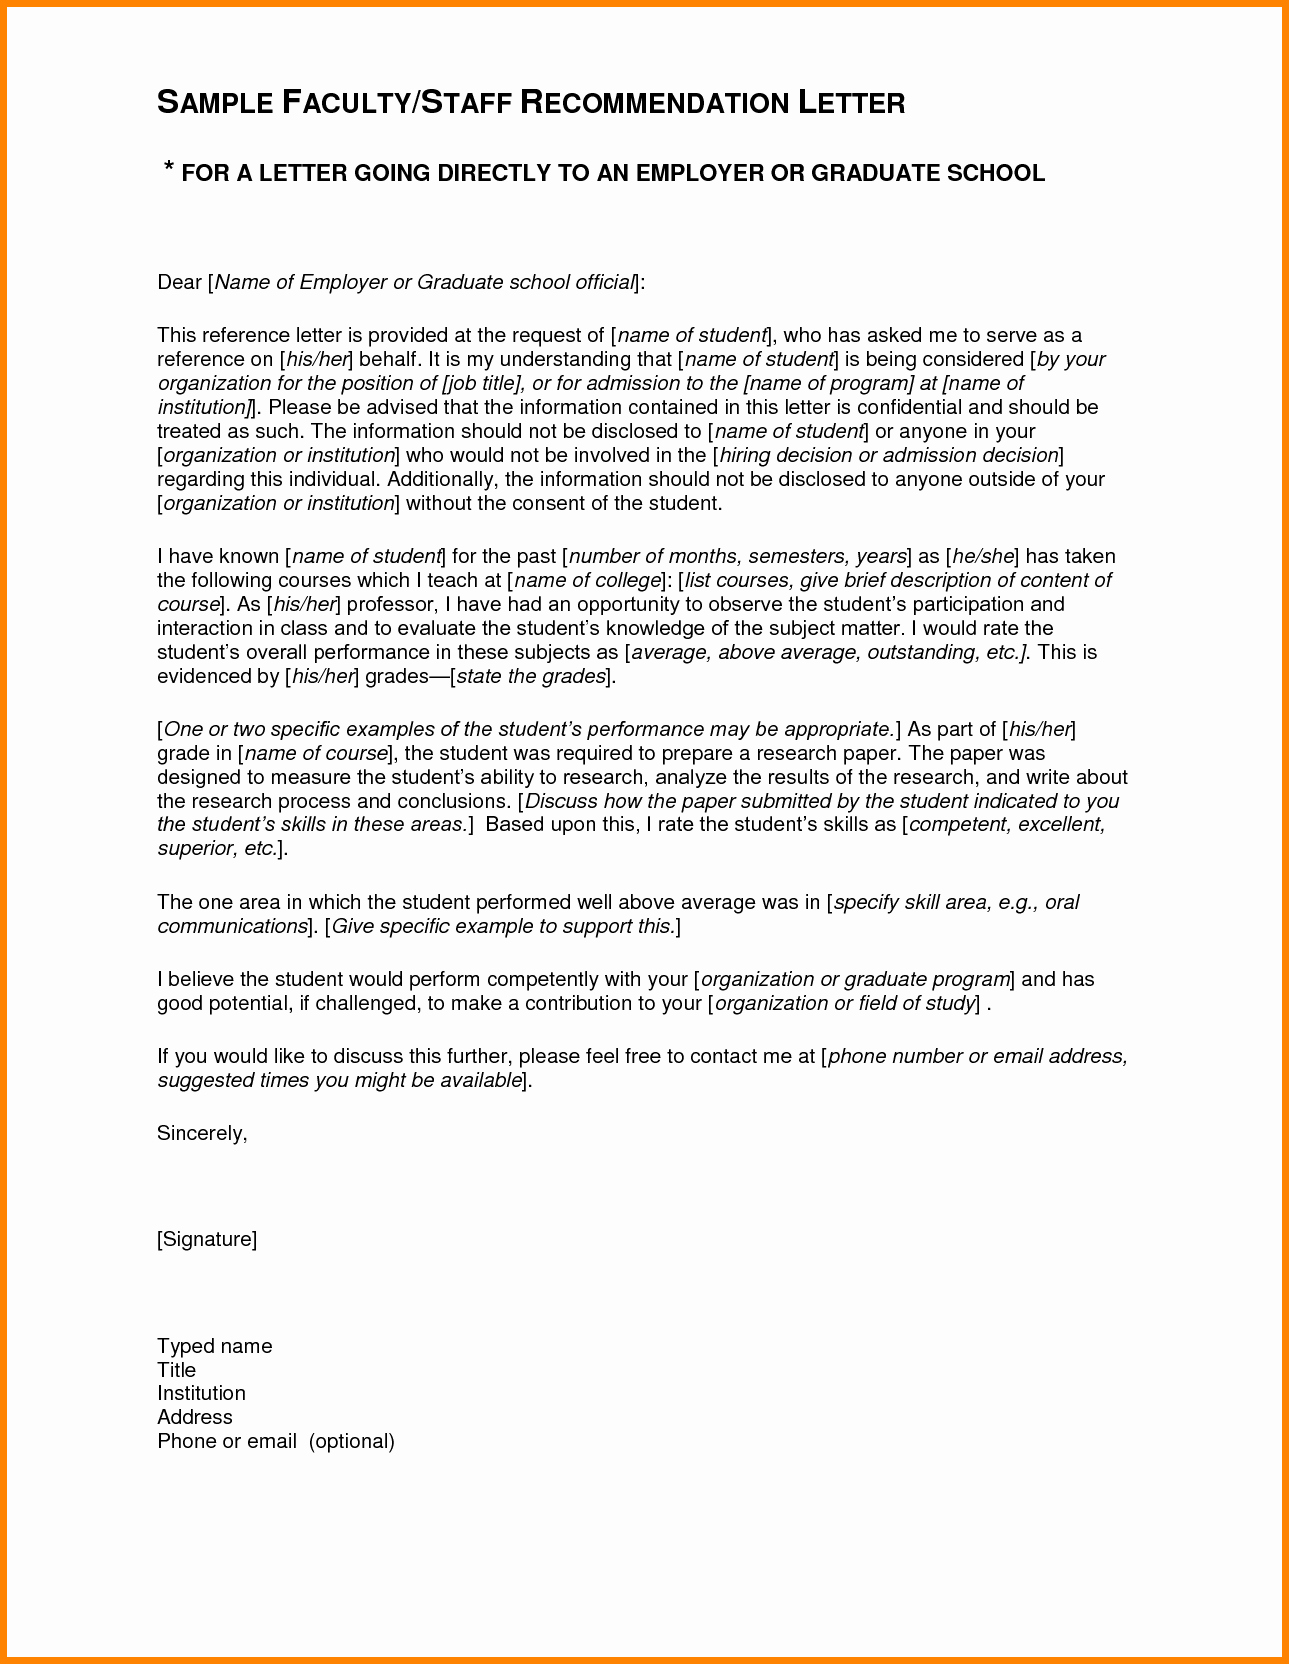 Recommendation Letter format for Student Beautiful 4 Re Mendation Letter Sample for Student